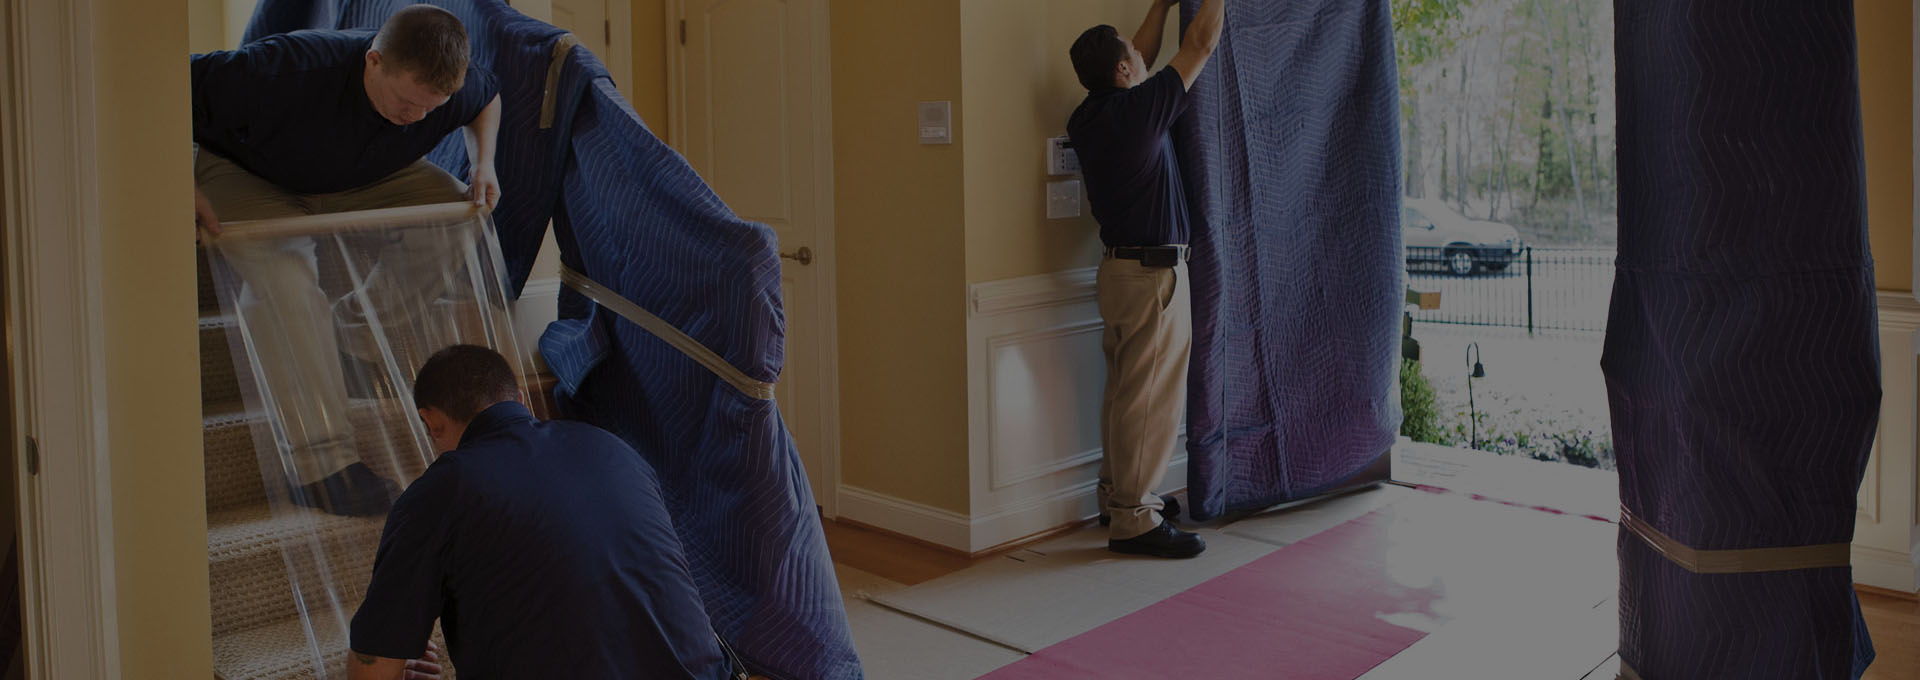 MOVING COMPANY IN ROCHESTER